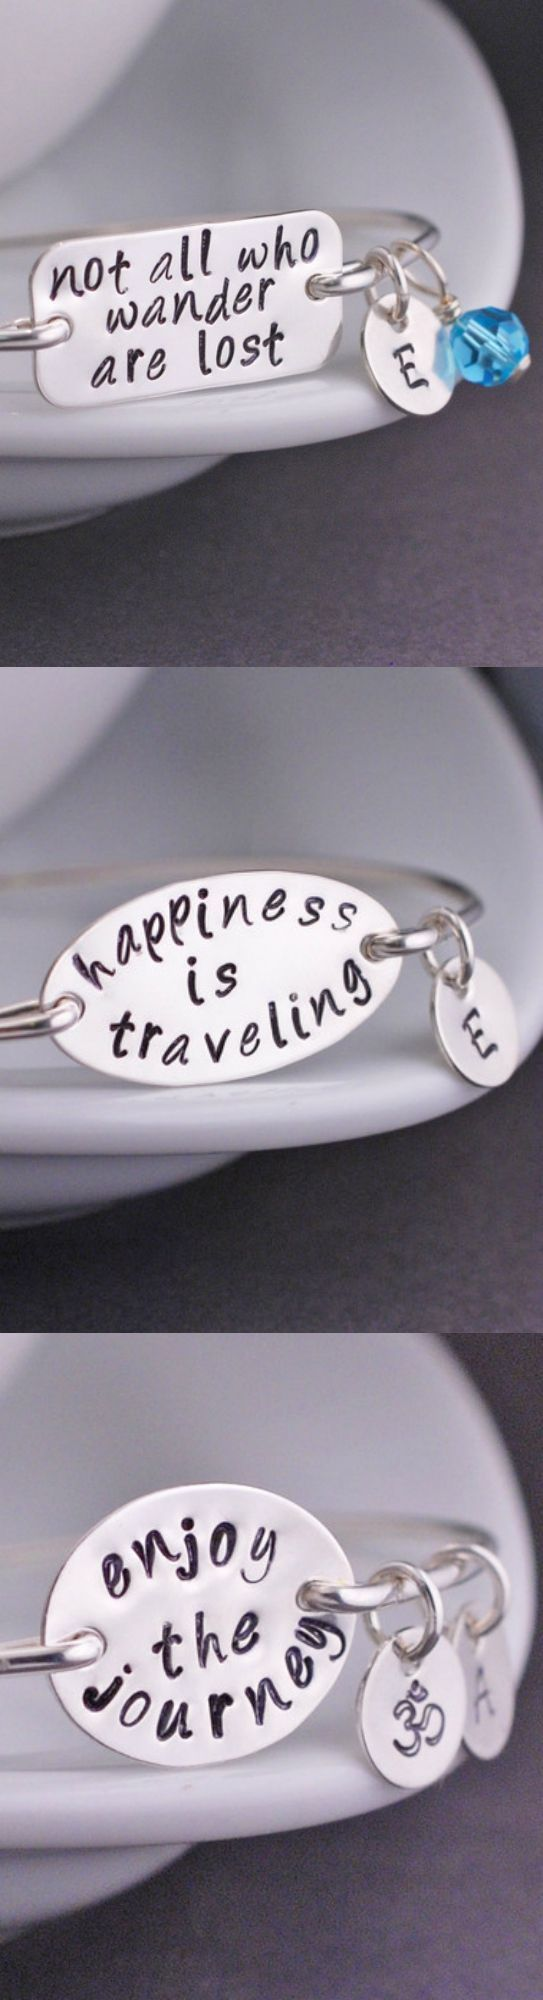 Awesome travel jewelry.